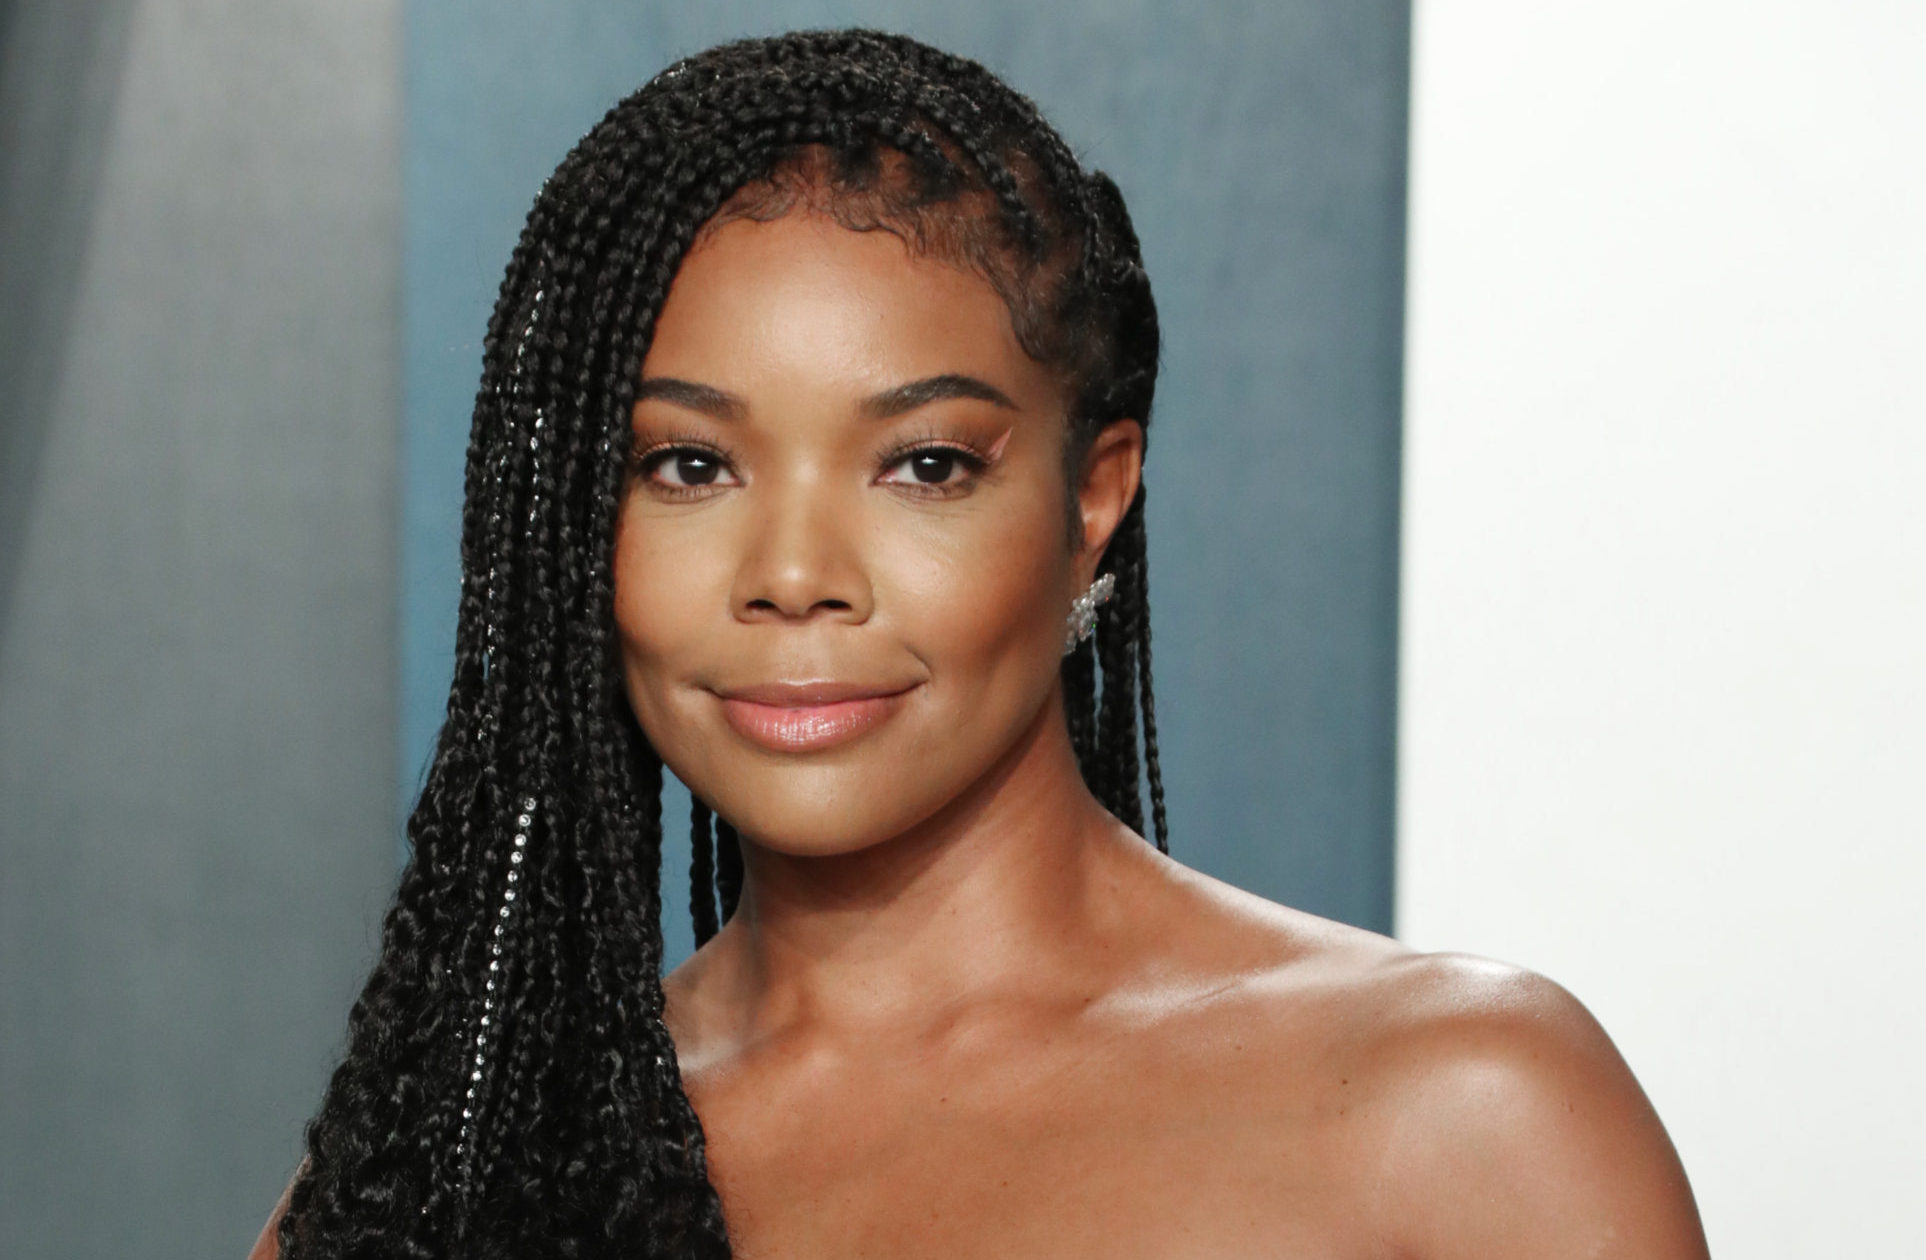 Gabrielle Union Says NBC Threatened her Agent: 'Gabrielle Better Watch Who She Calls a Racist'